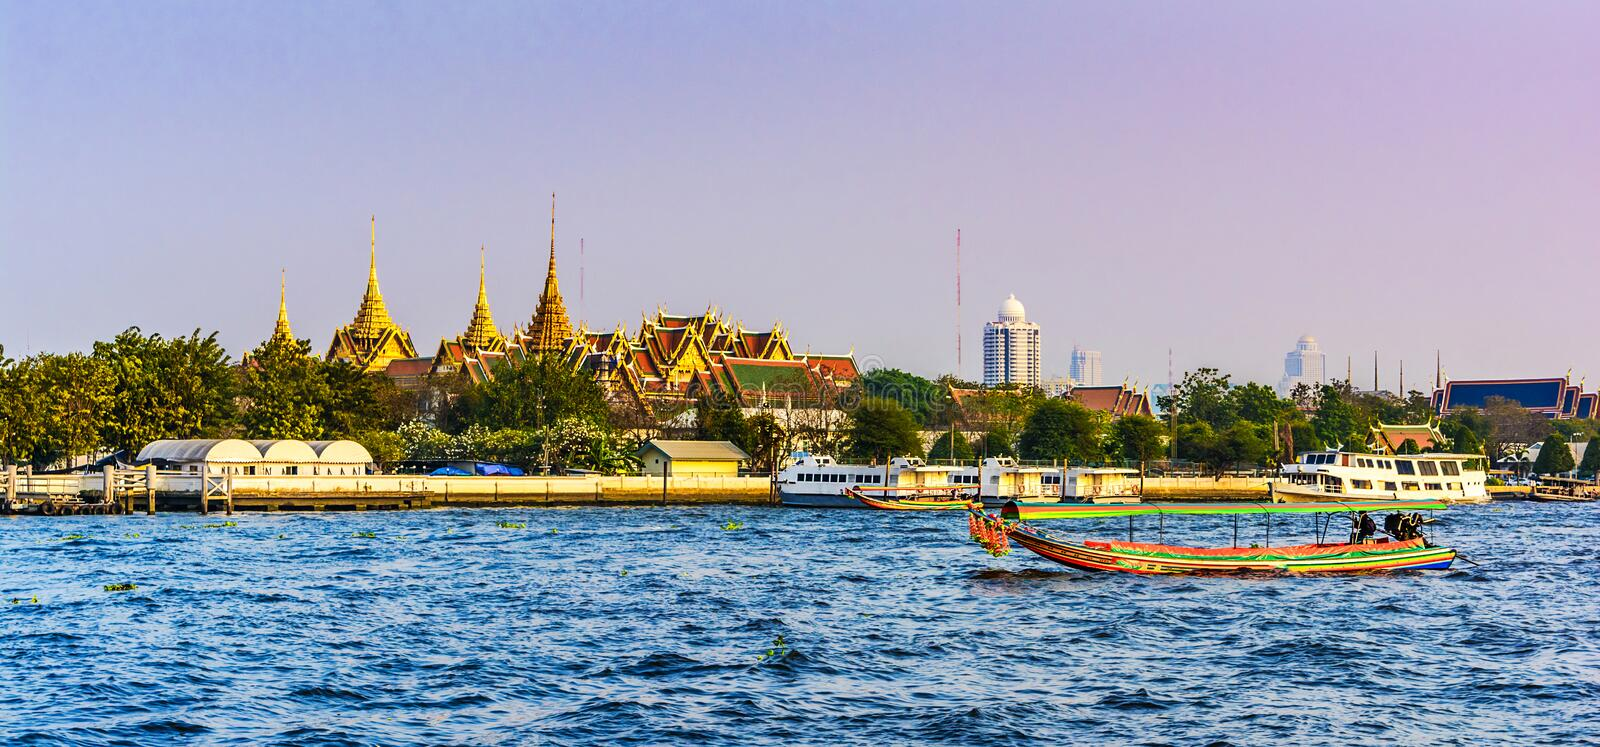 Sunset view across the Grand Palace, with the Chao Praya River i stock photography